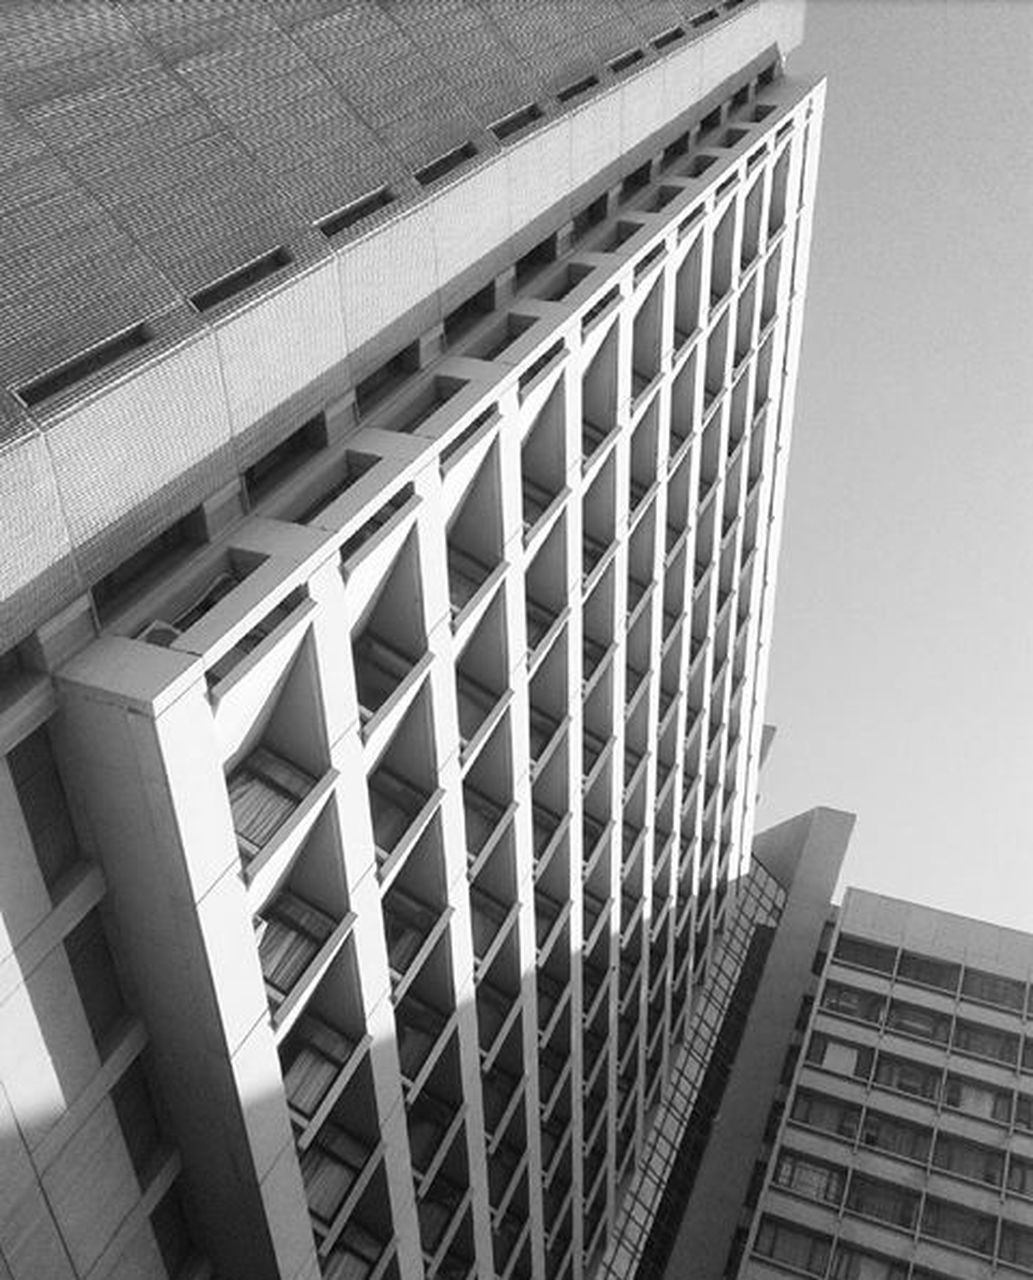 architecture, built structure, building exterior, low angle view, no people, day, modern, outdoors, skyscraper, city, sky